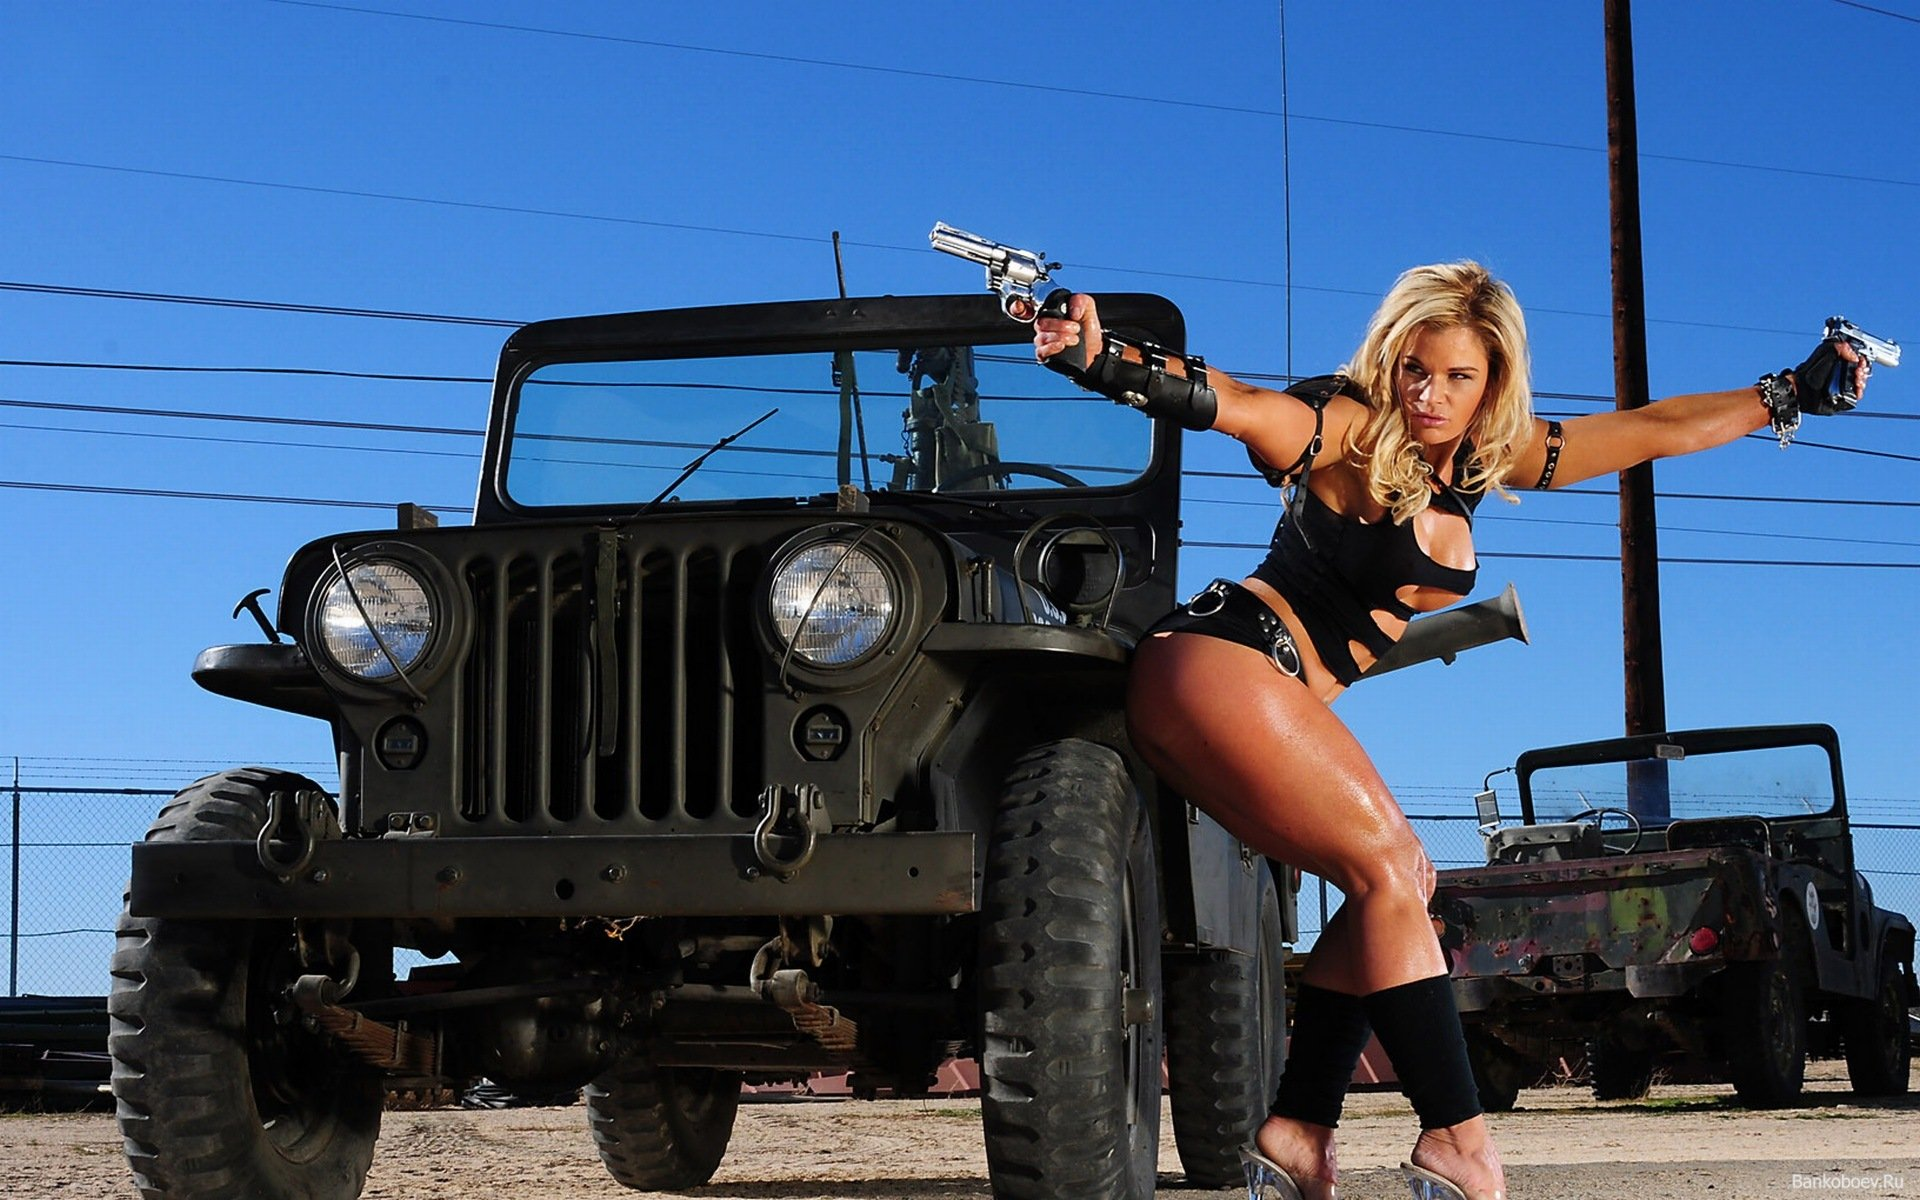 jeep desktop wallpaper pictures Military girl and a jeep photos 1920x1200